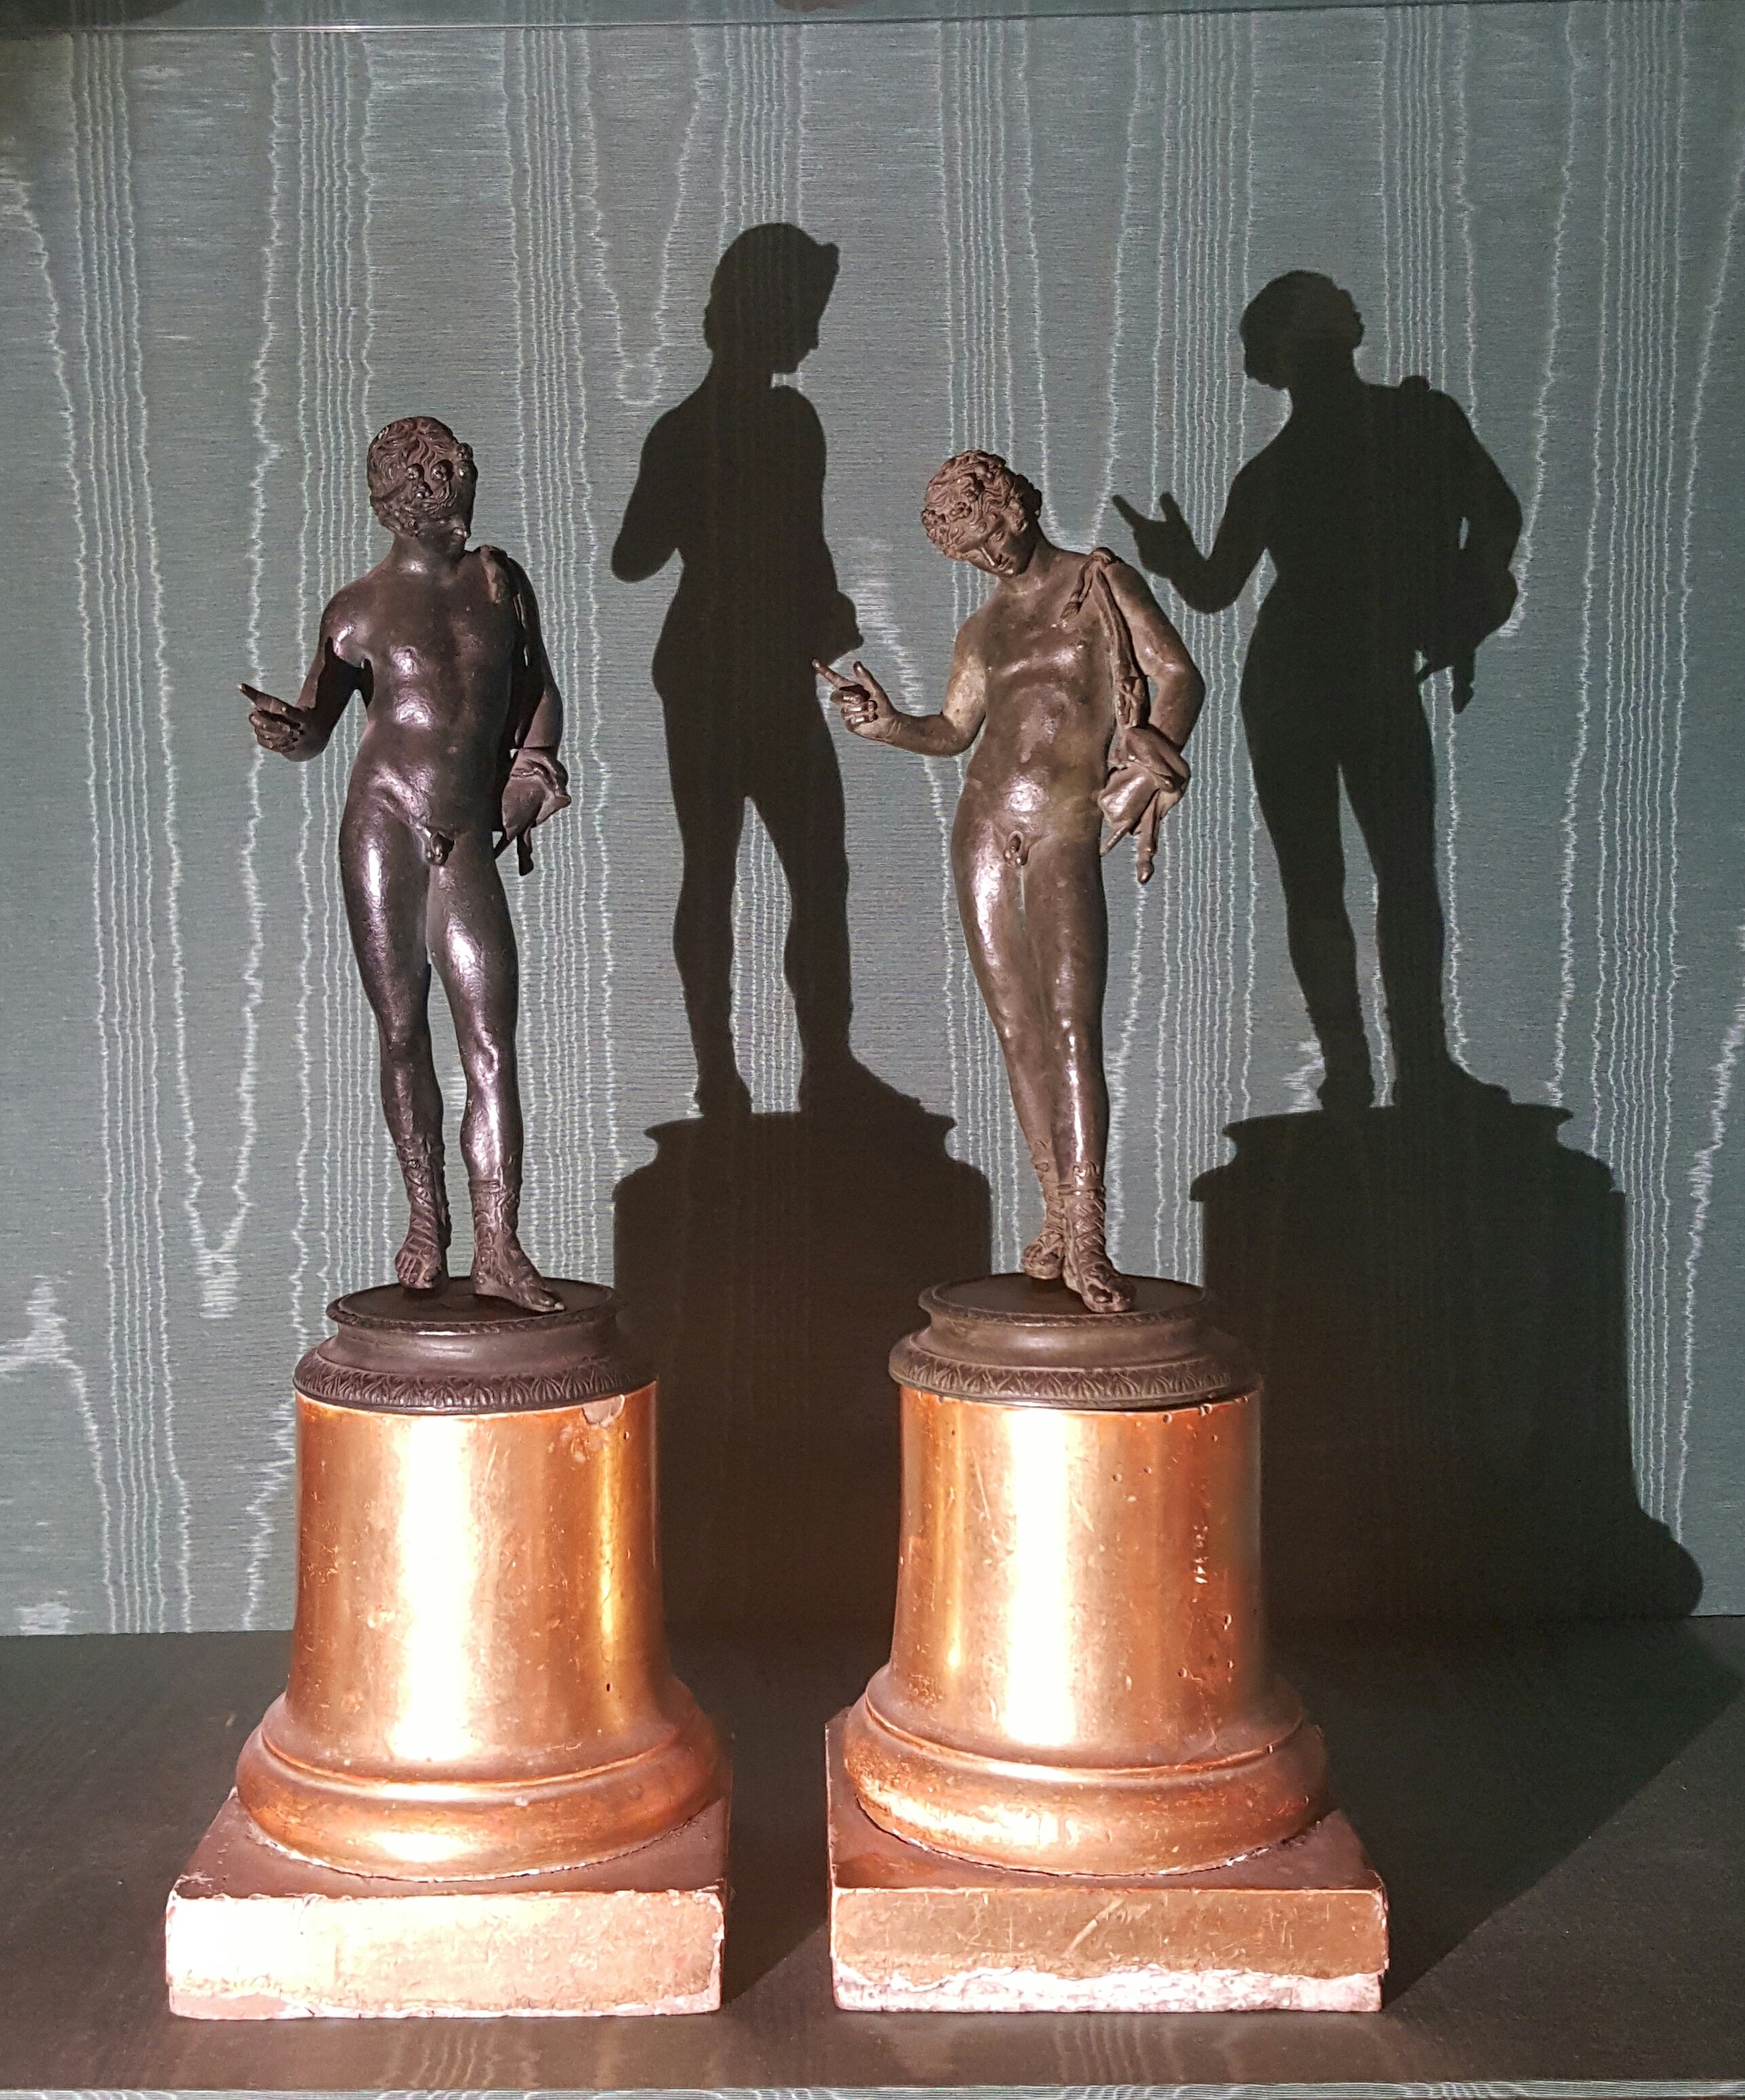 Pair of 19th century Bronzes